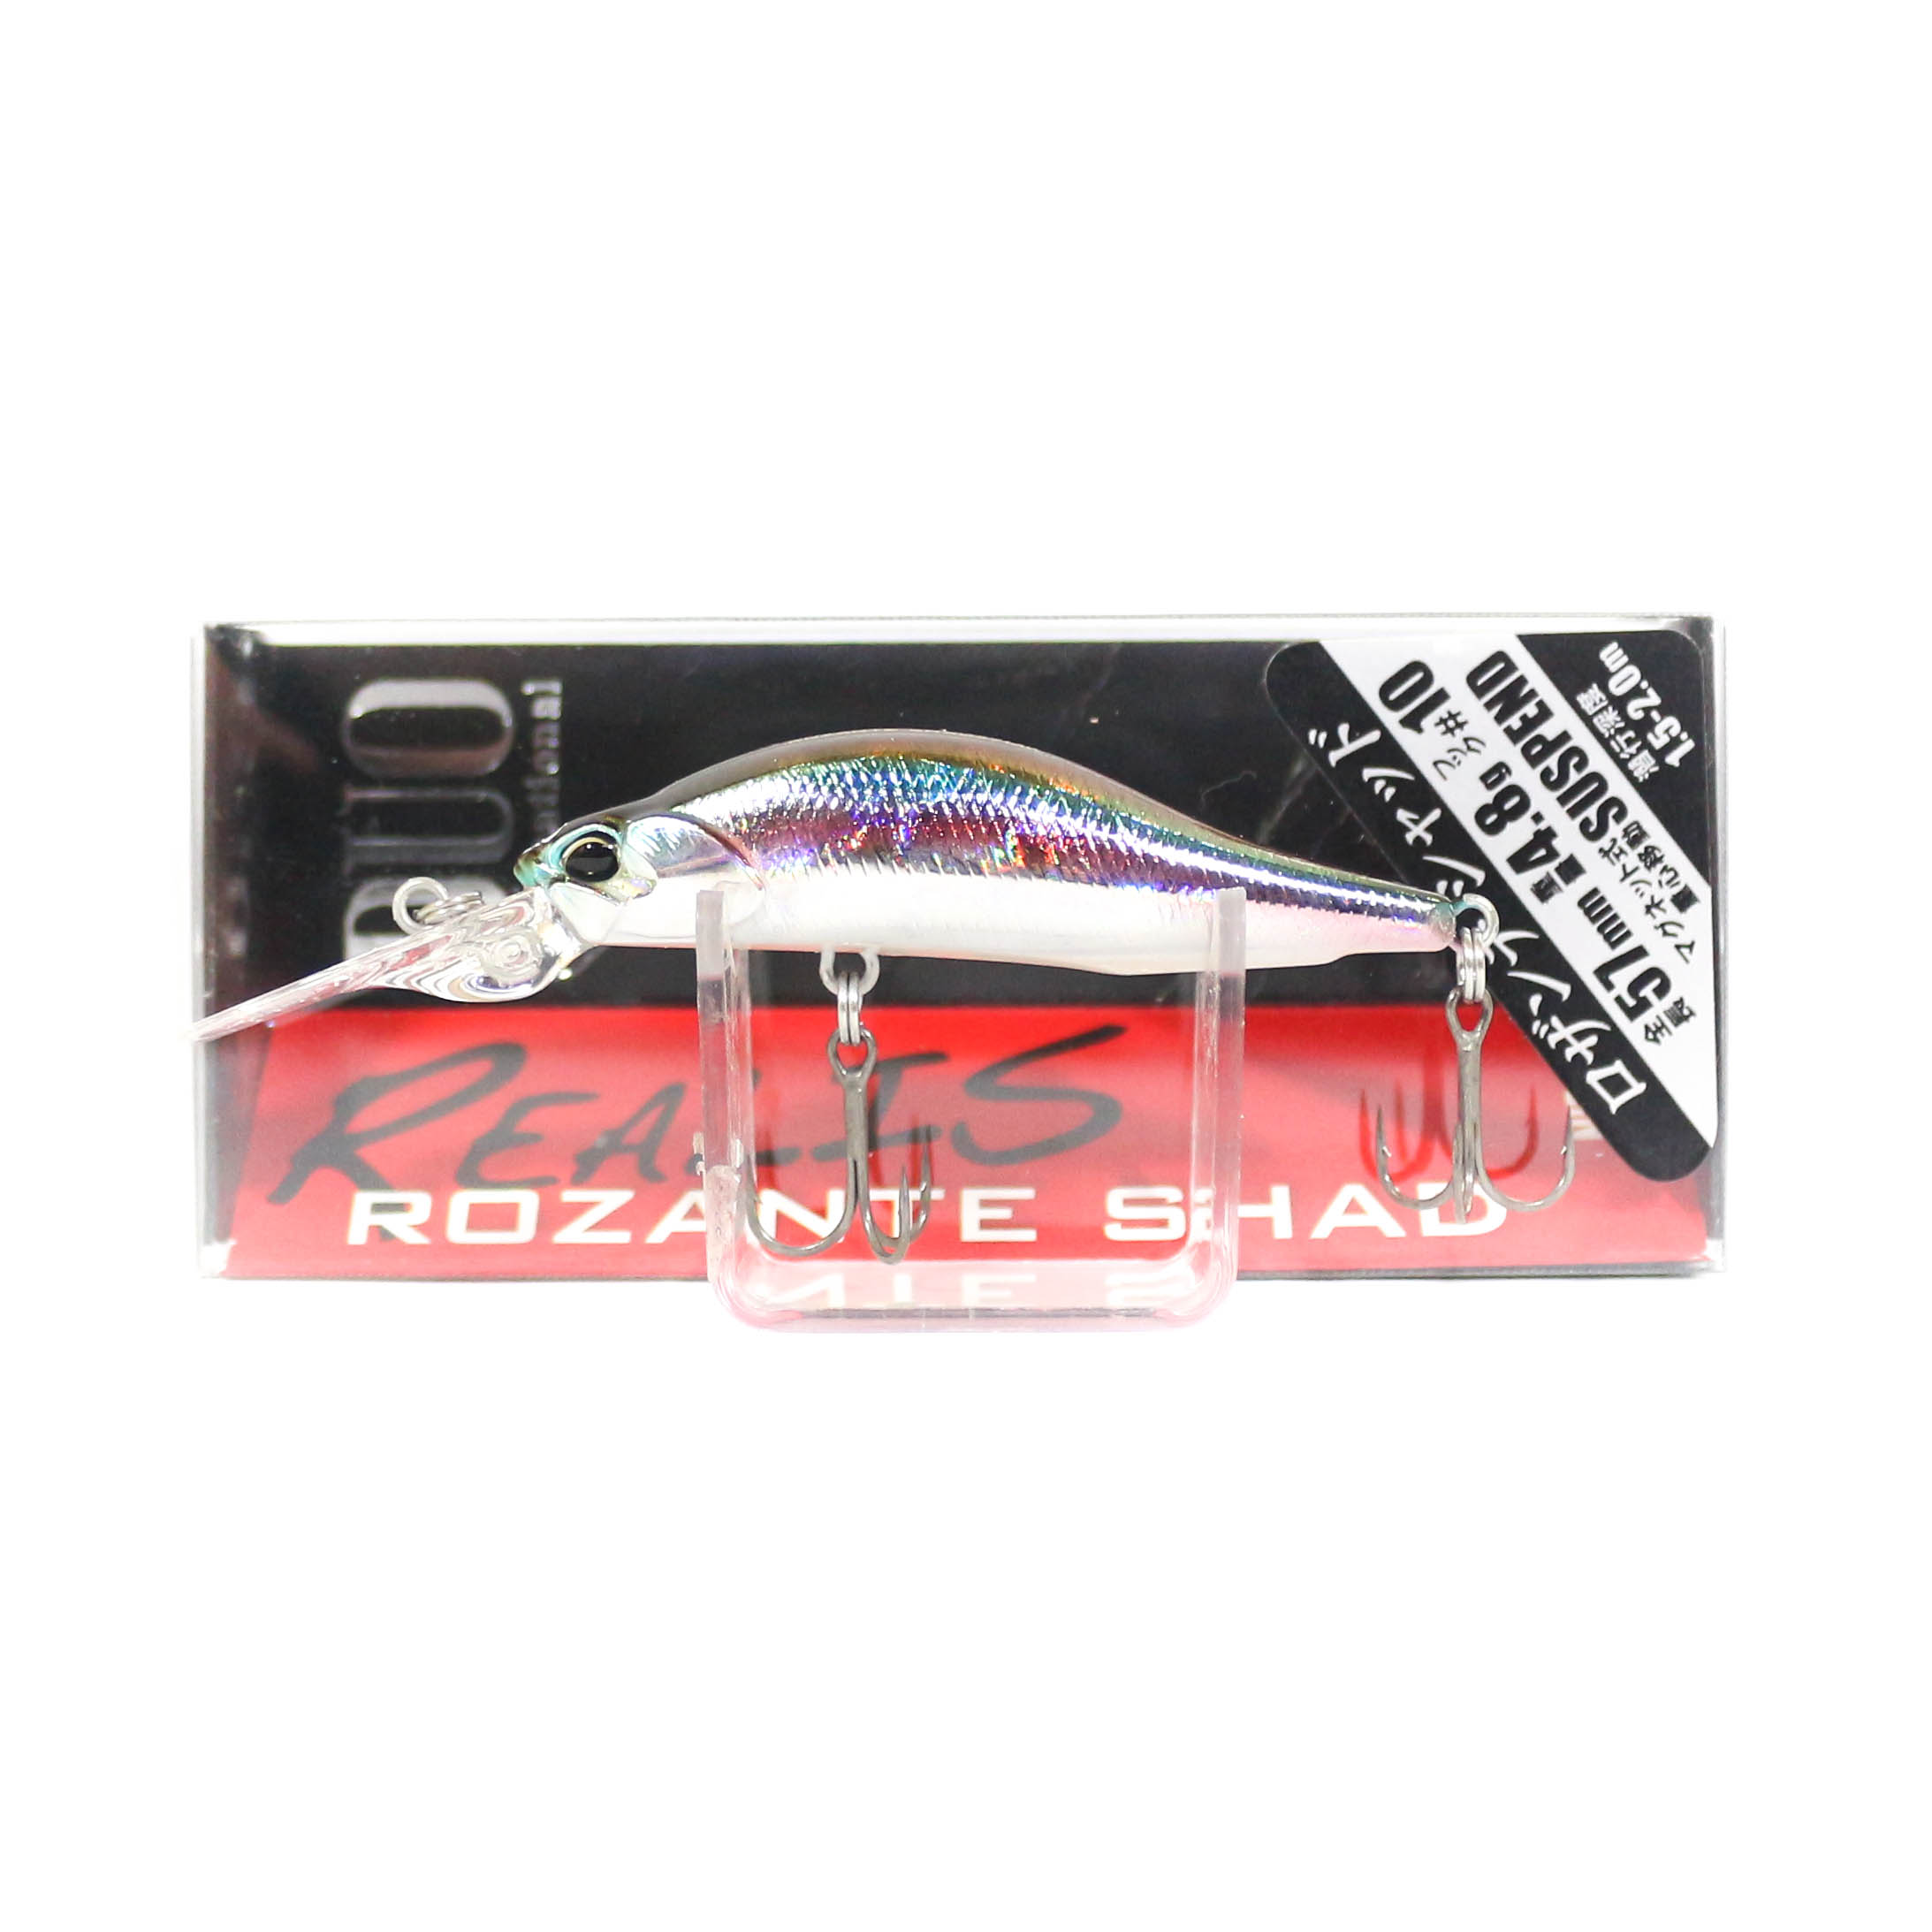 Duo Realis Rozante Shad 57 MR Suspend Lure ADA4013 (0290)